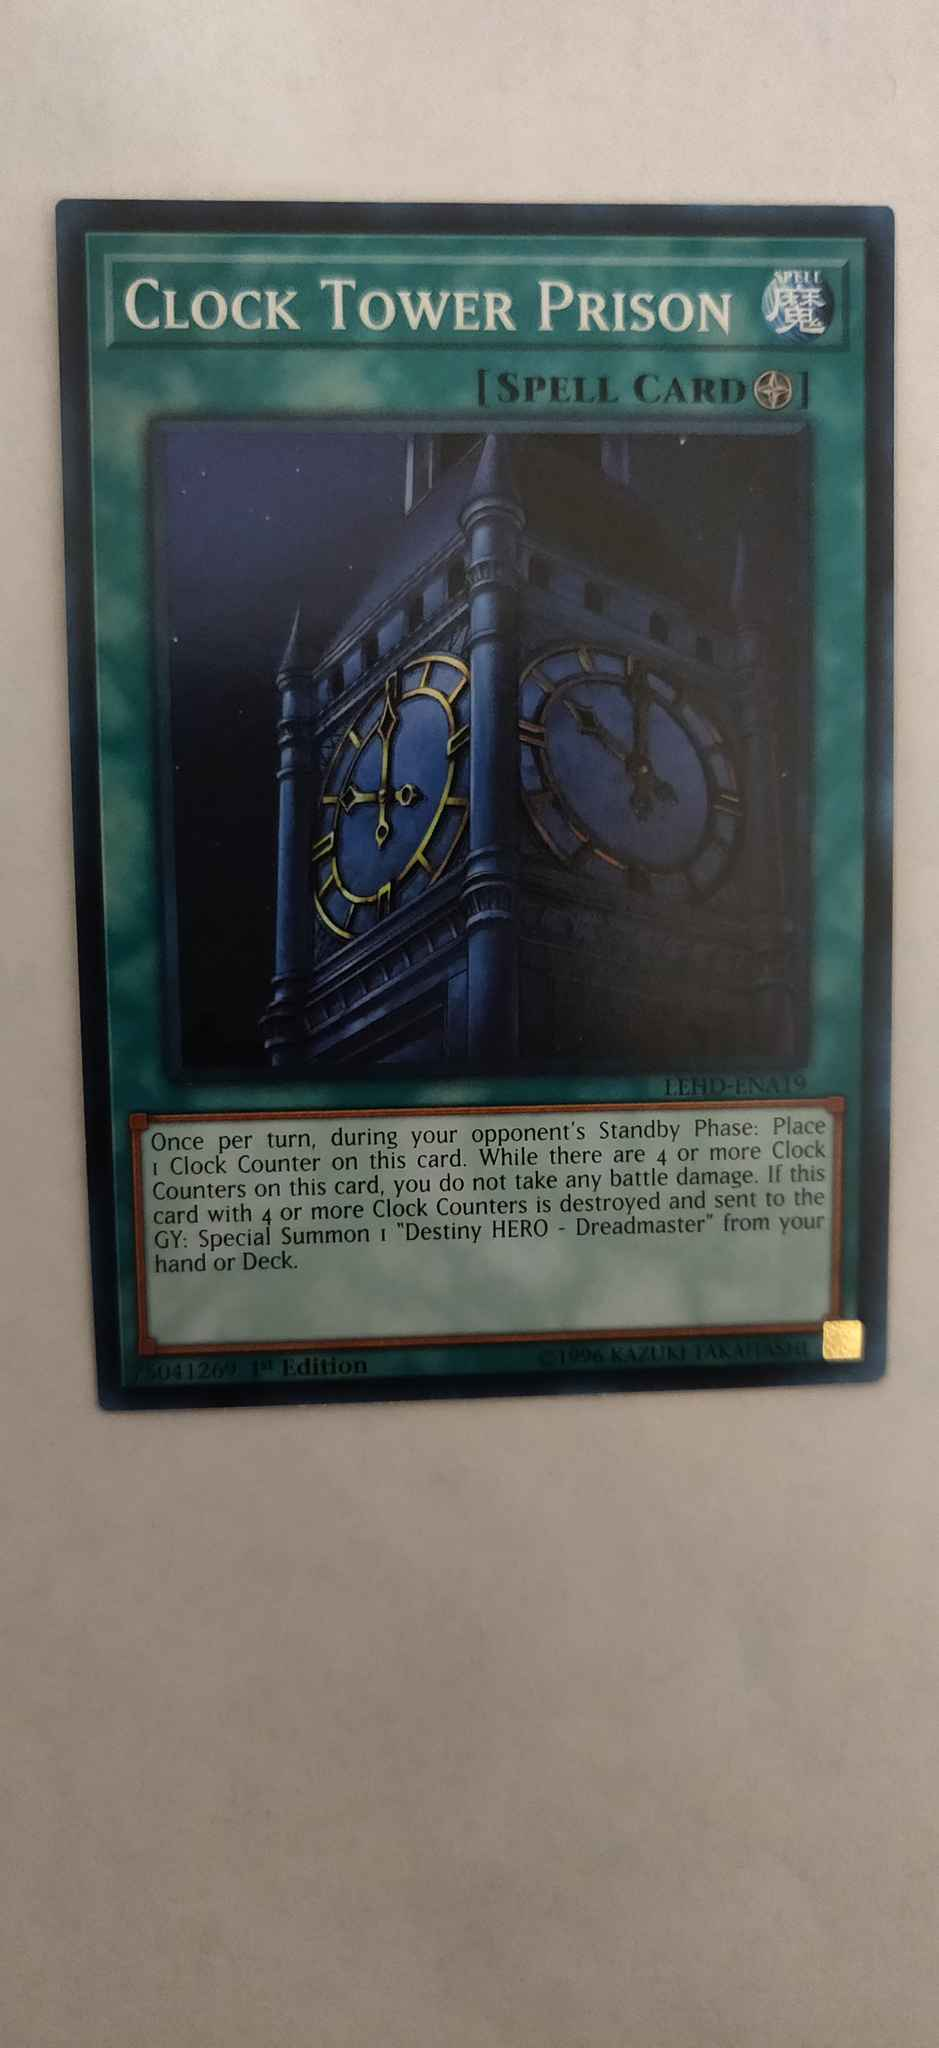 Clock Tower Prison Clock Tower Prison Legendary Hero Decks Yugioh Online Gaming Store For Cards Miniatures Singles Packs Booster Boxes